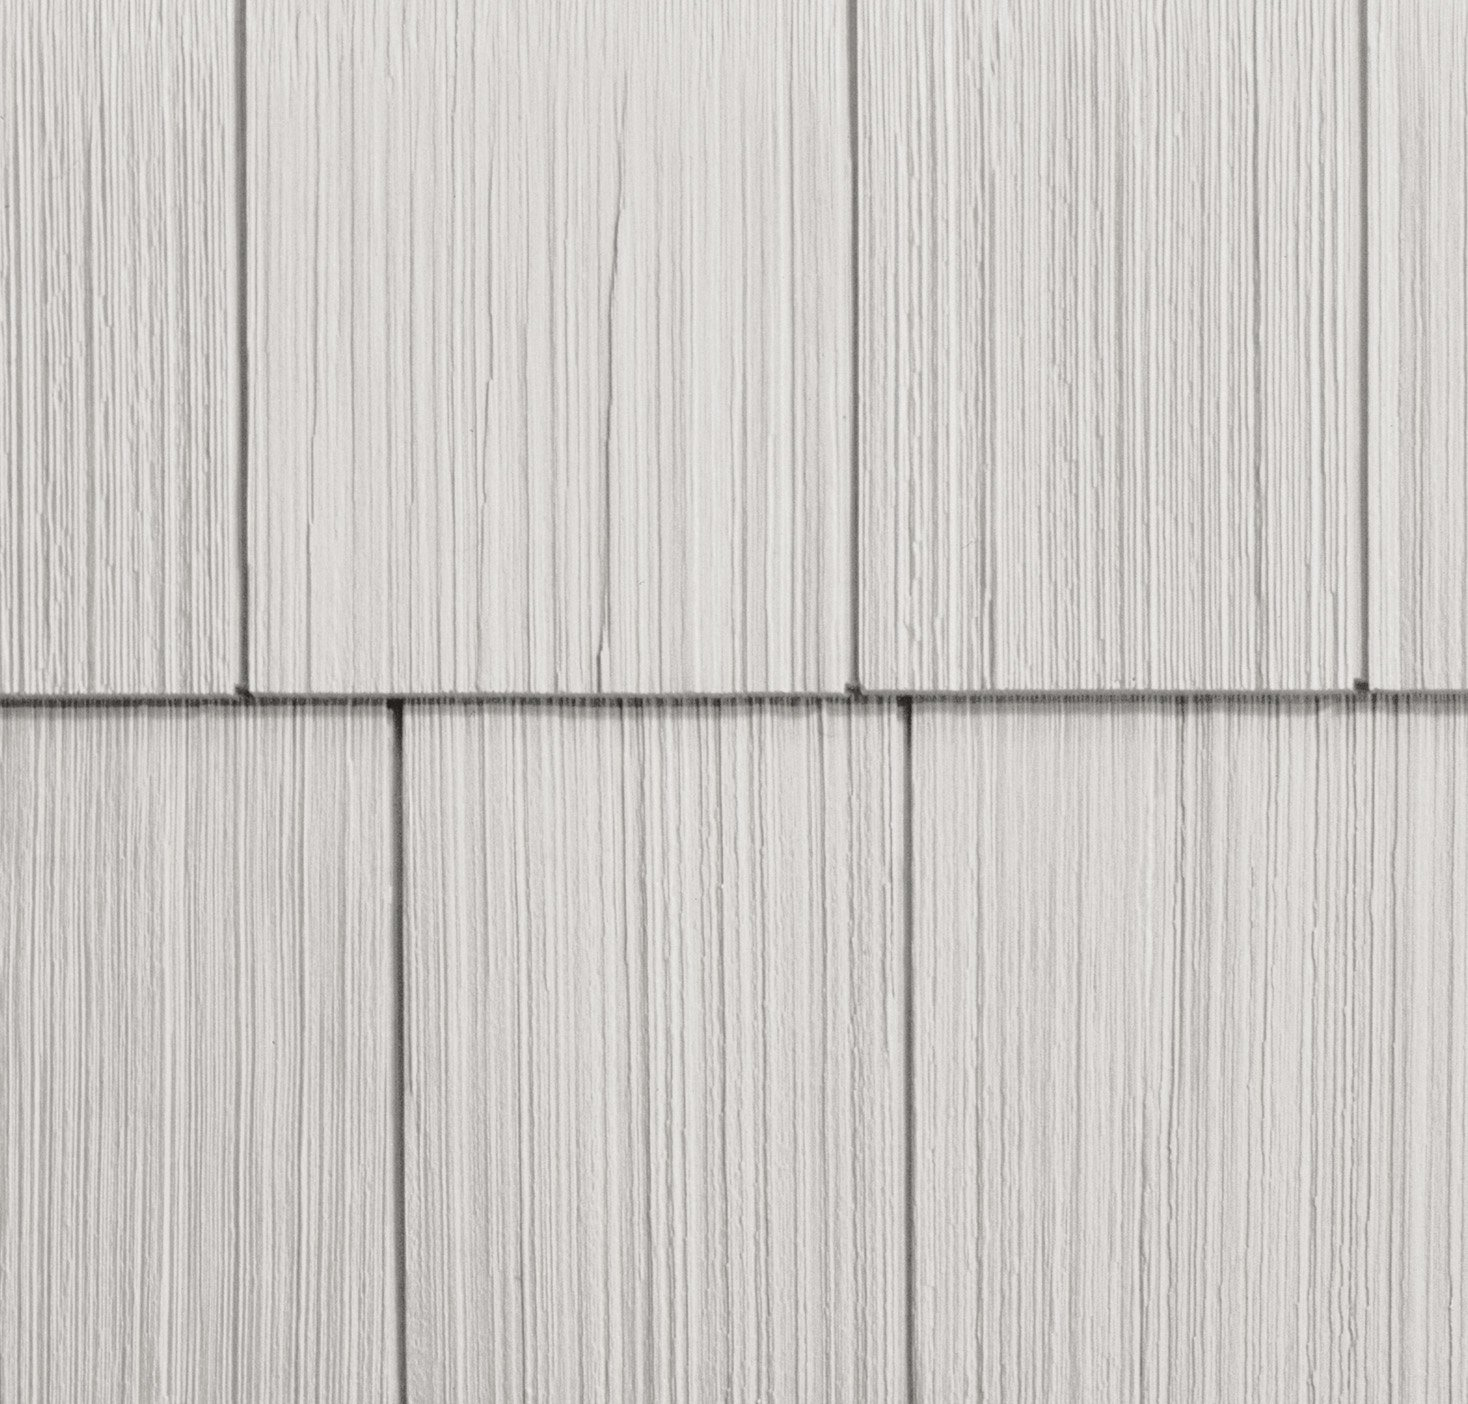 ComfortWorld Board and Batten vertical siding in Springdale and Fort Smith, AR